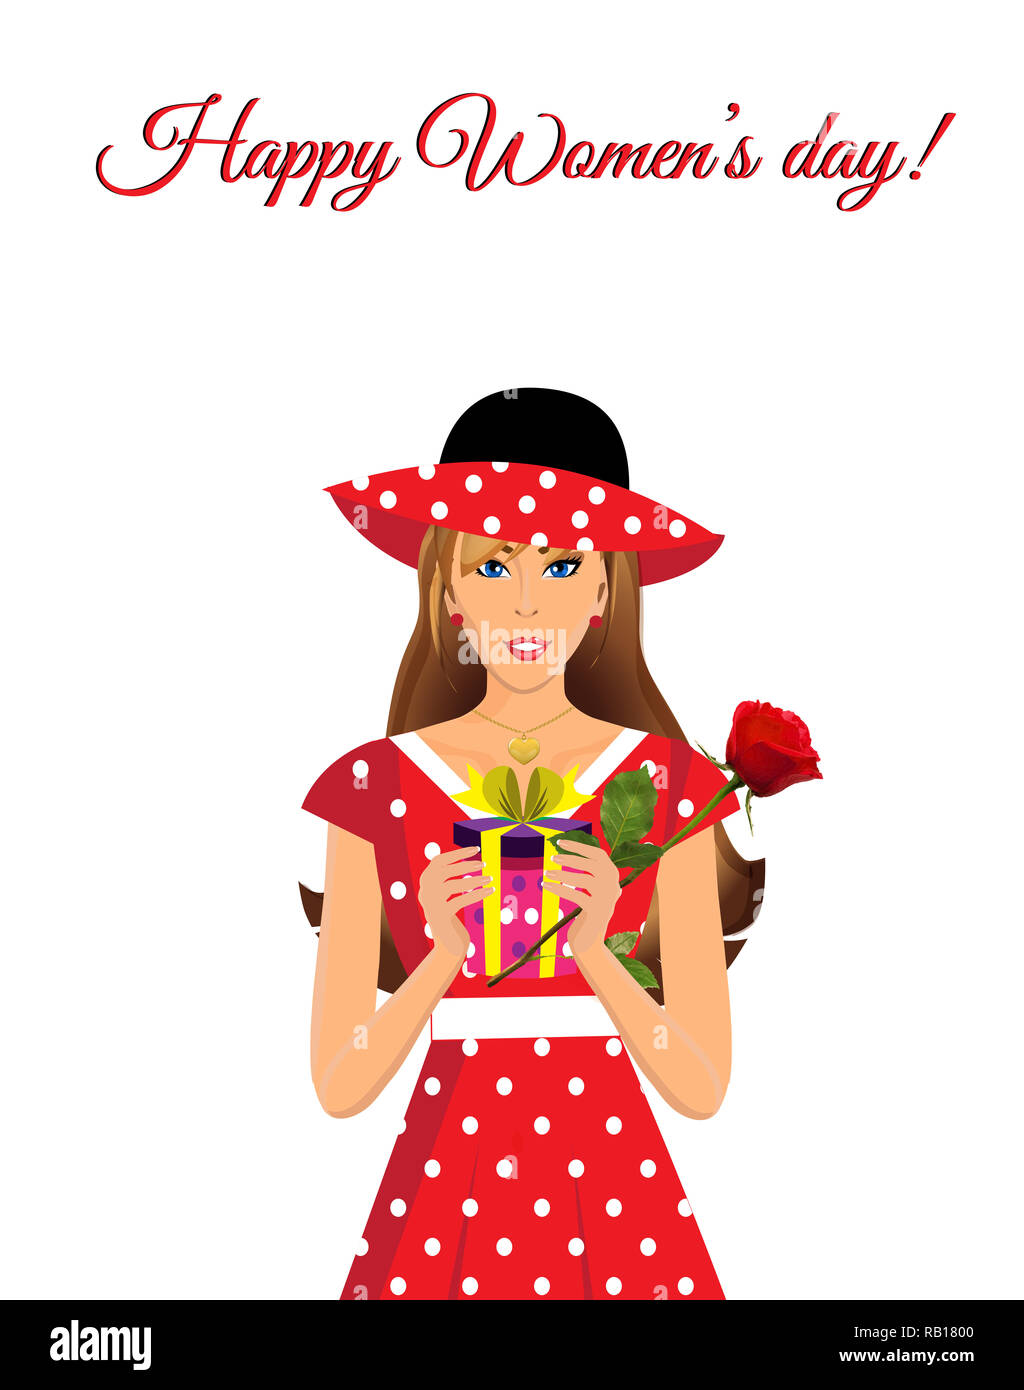 Happy women s day greeting card with cute adorable girl in red dress with polka dots print and hat holding gift and beautiful rose in hands isolated o - Stock Image